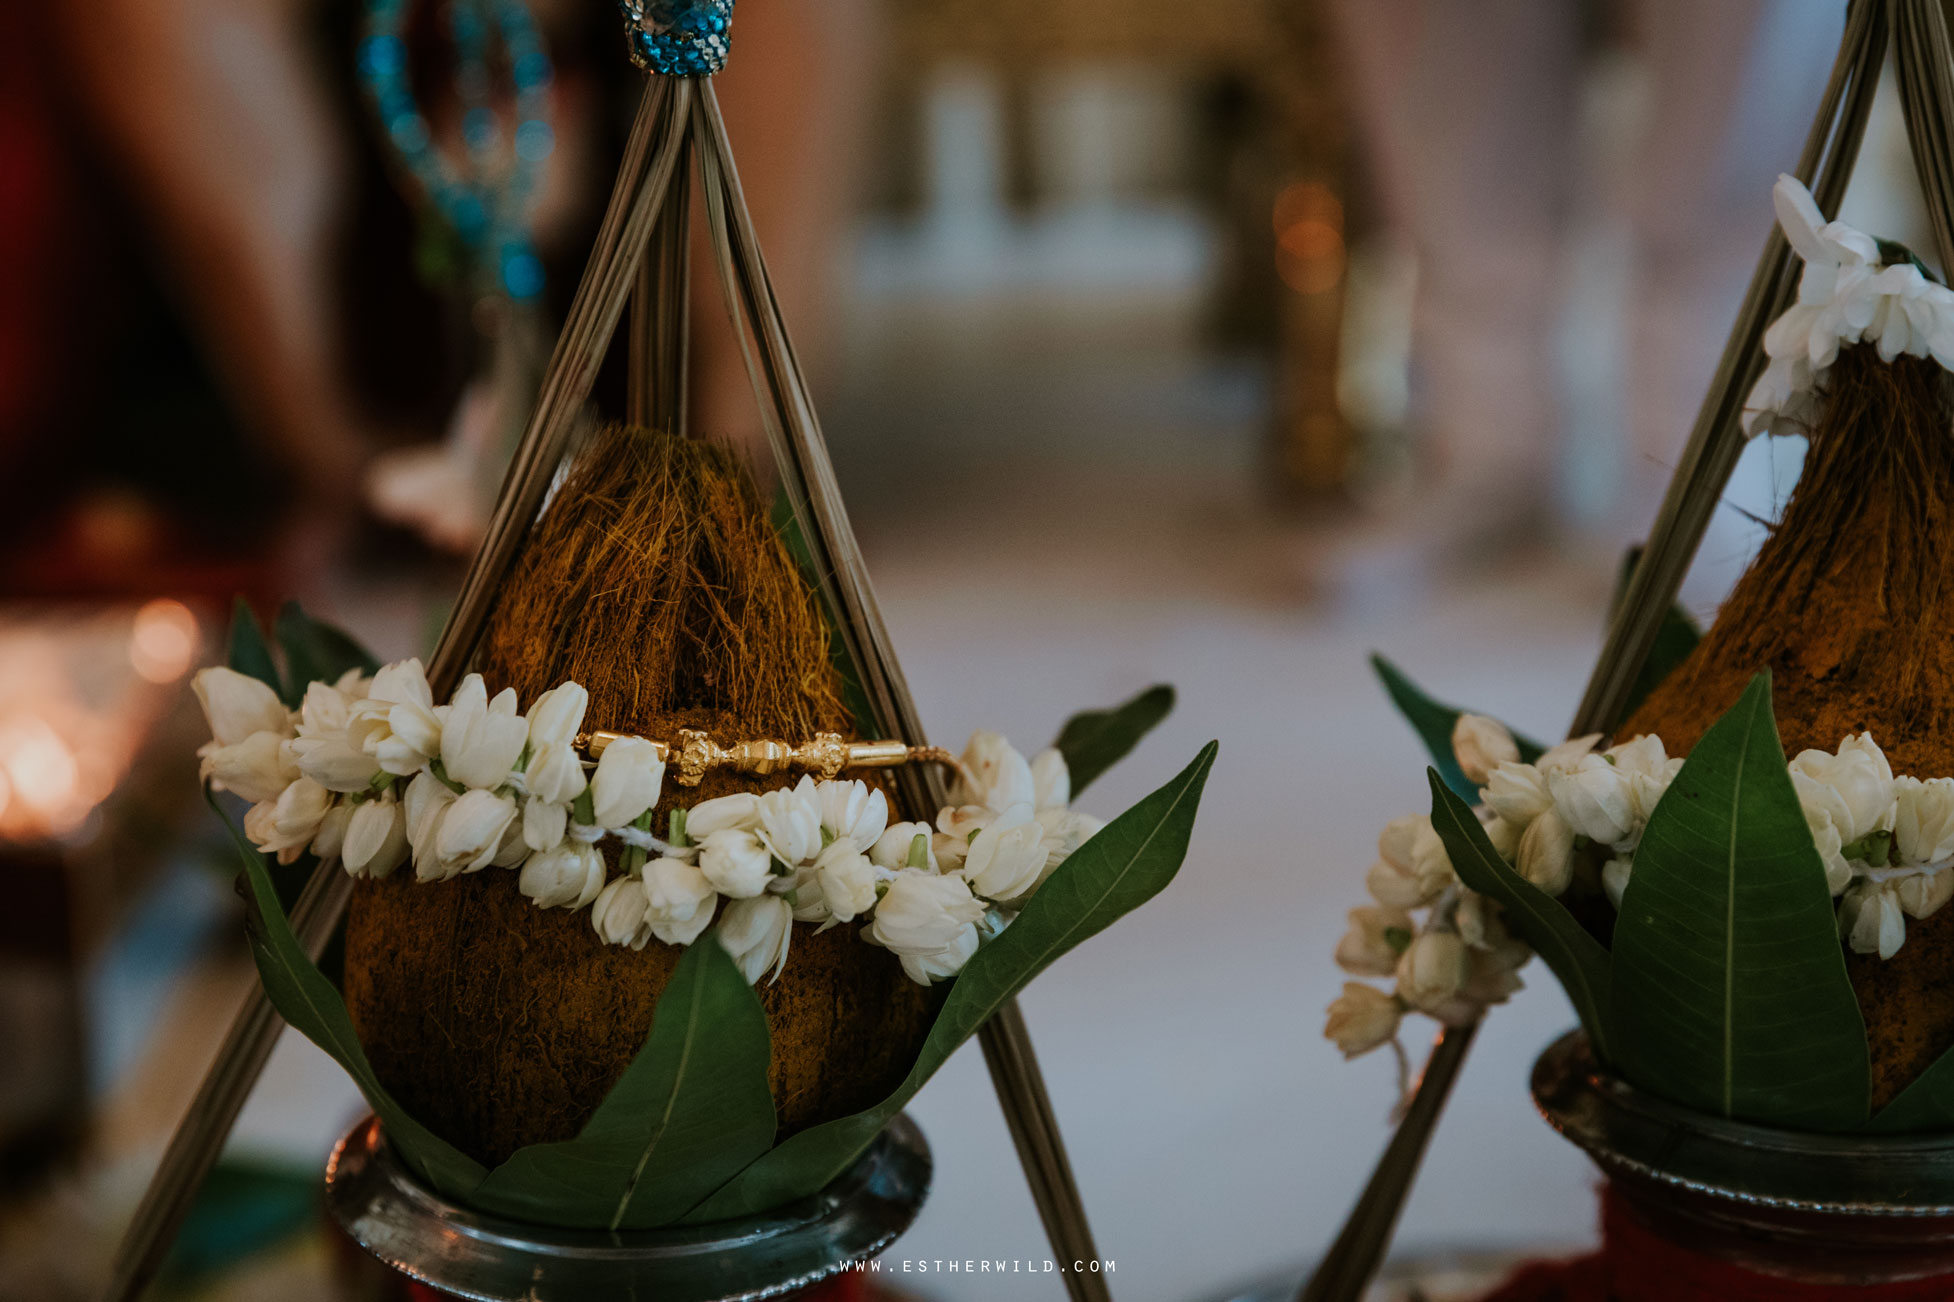 Northbrook_Park_Farnham_Surrey_London_Wedding_Hindu_Fusion_Esther_Wild_Photographer_IMG_4468.jpg